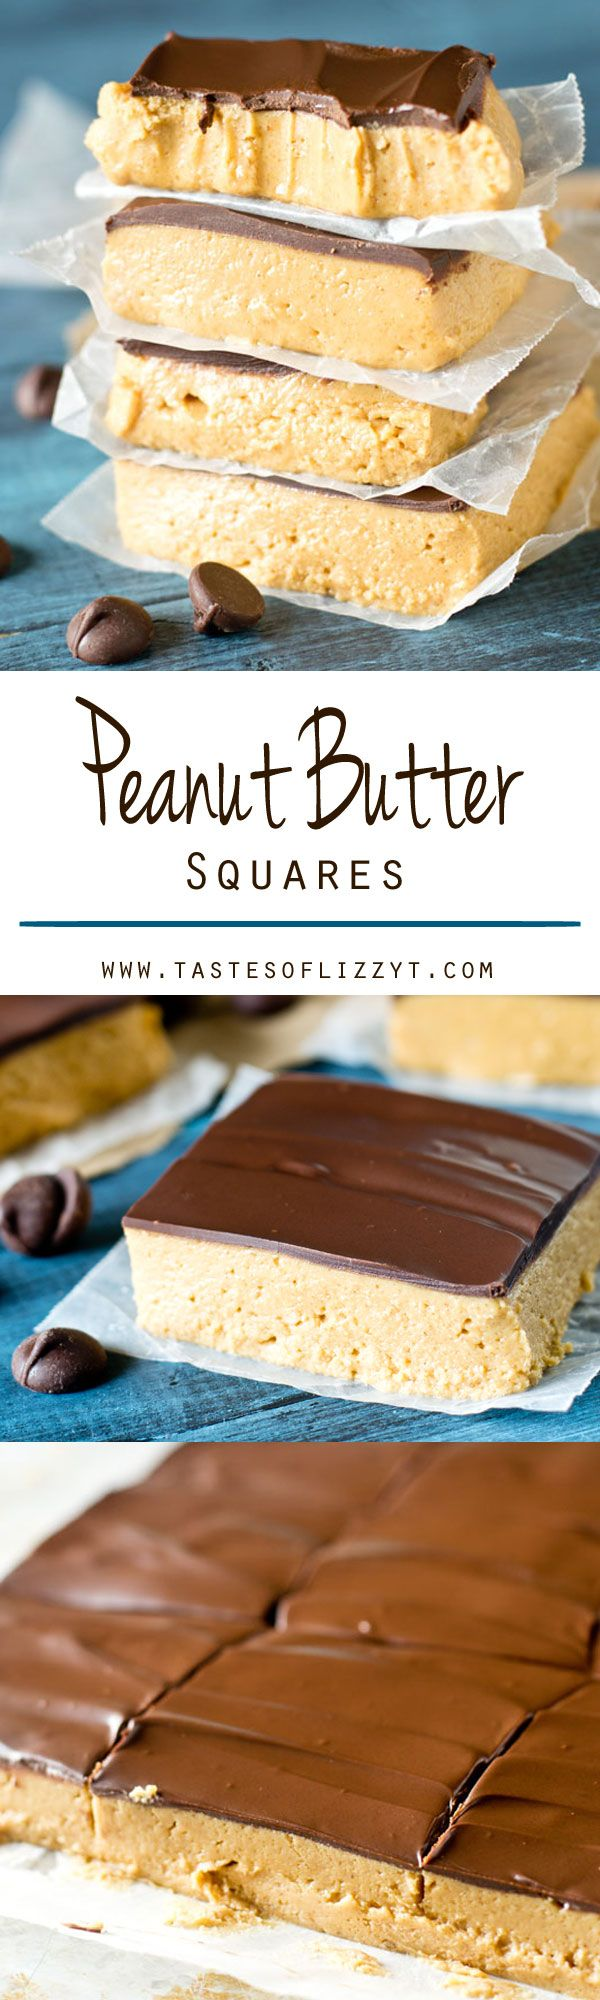 Peanut Butter no Bake Squares Recipe are the classic school lunchroom treat from your childhood. This no-bake dessert has a thick layer of peanut butter topped with a layer of chocolate.